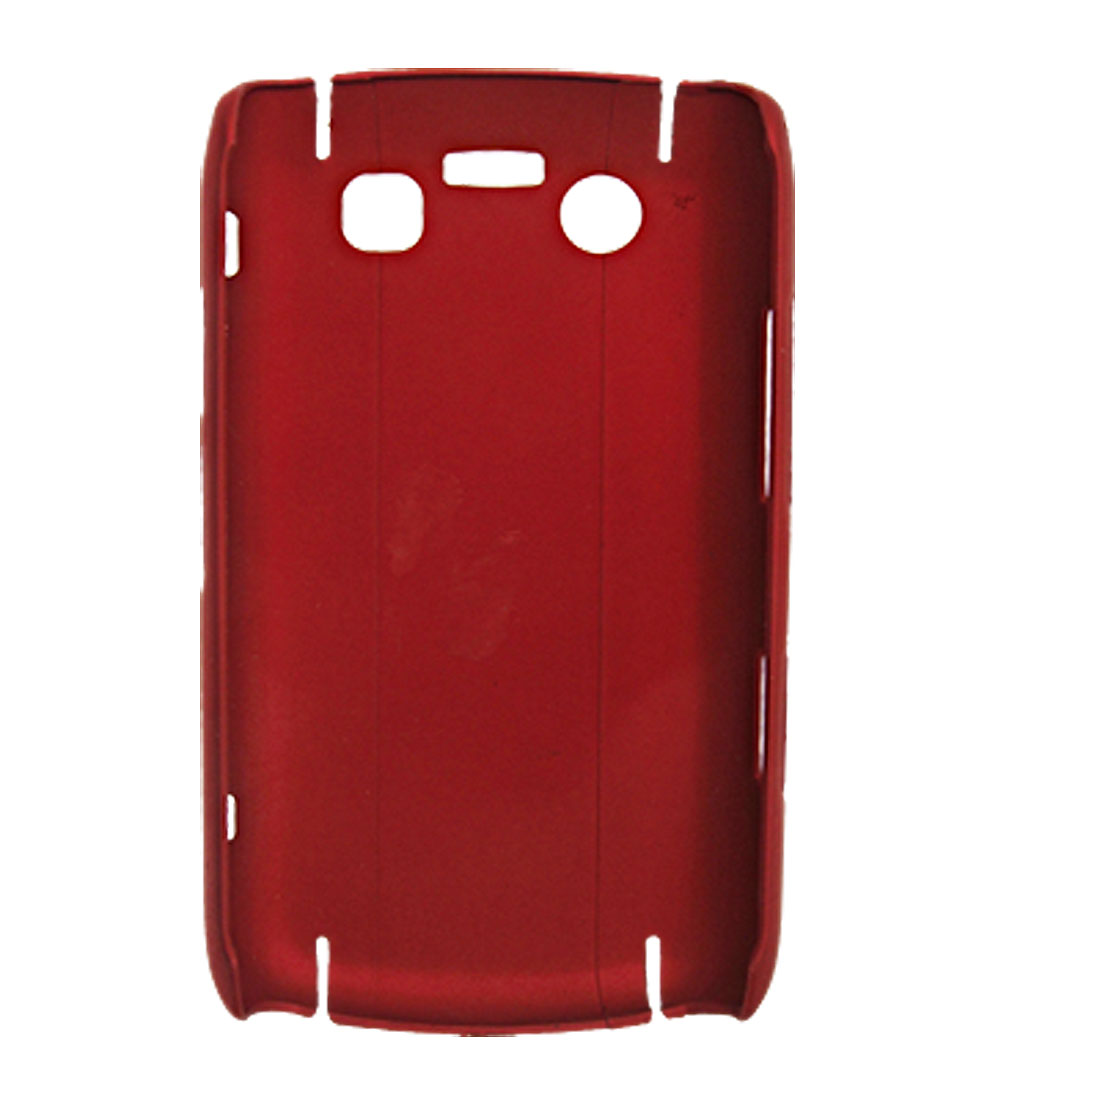 Dark Red Rubberized Hard Plastic Back Case for Blackberry 9700